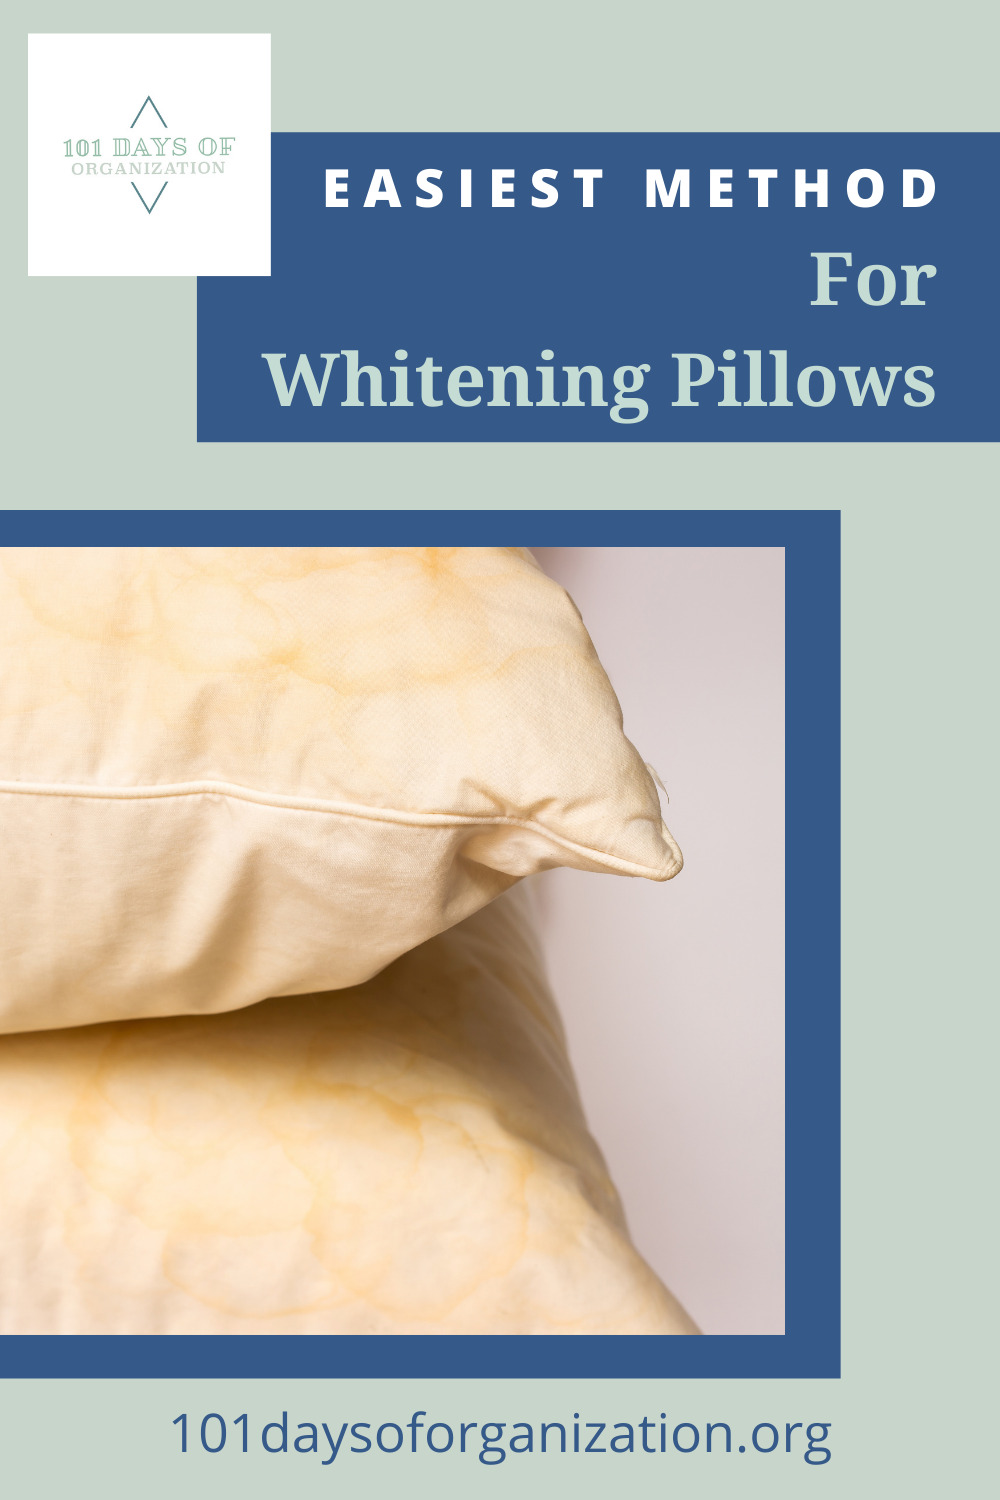 101daysoforganization.org has the best tips to keep your home perfectly clean. Find out how you can whiten your pillows after they've started to look a bit drab!